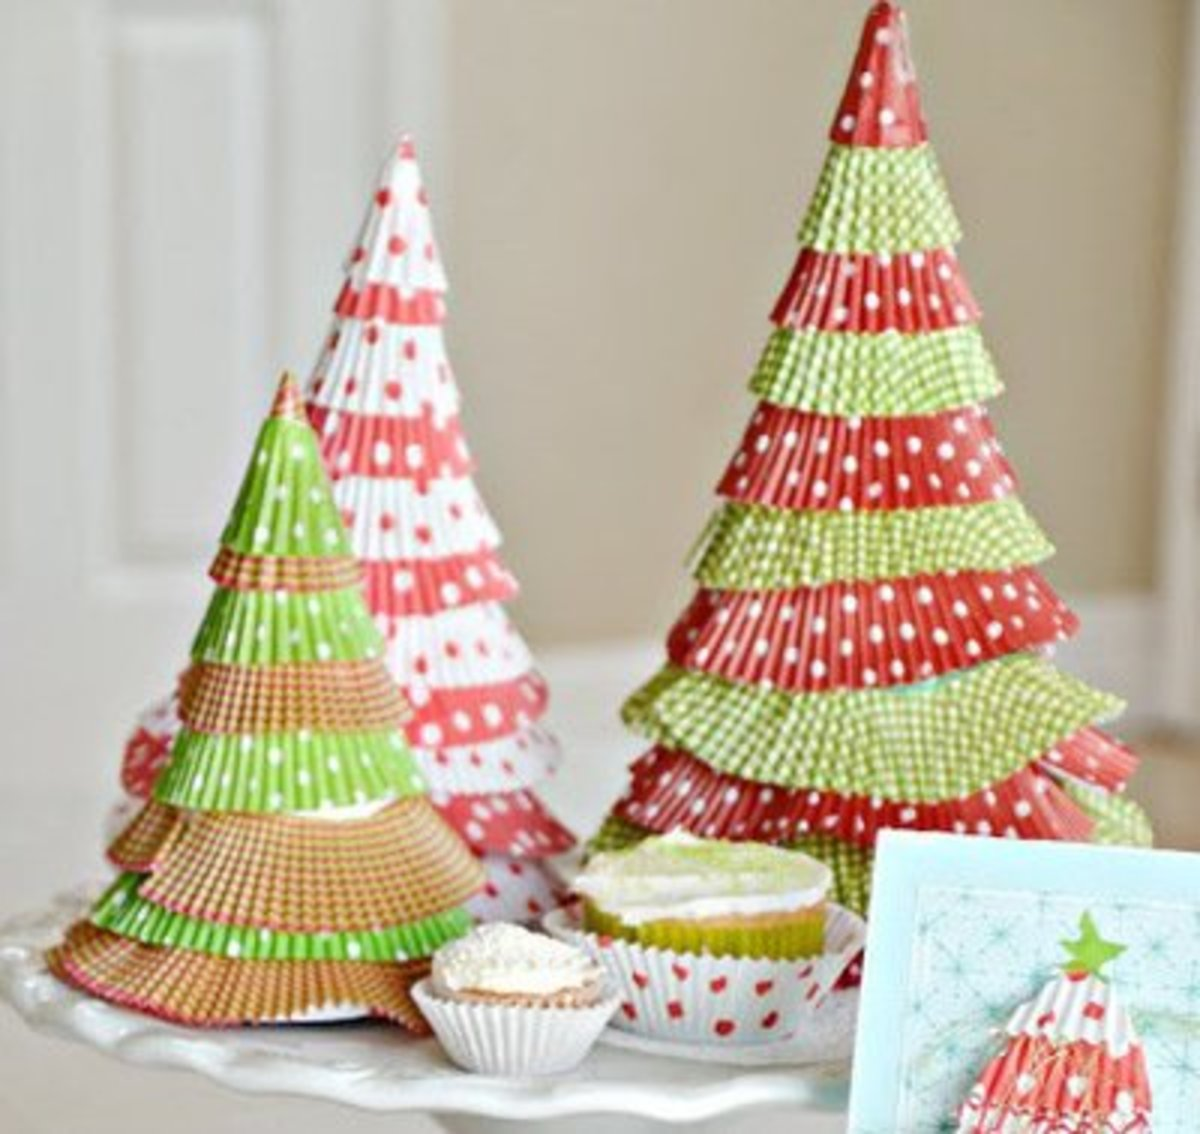 all-cupcake-paper-crafts